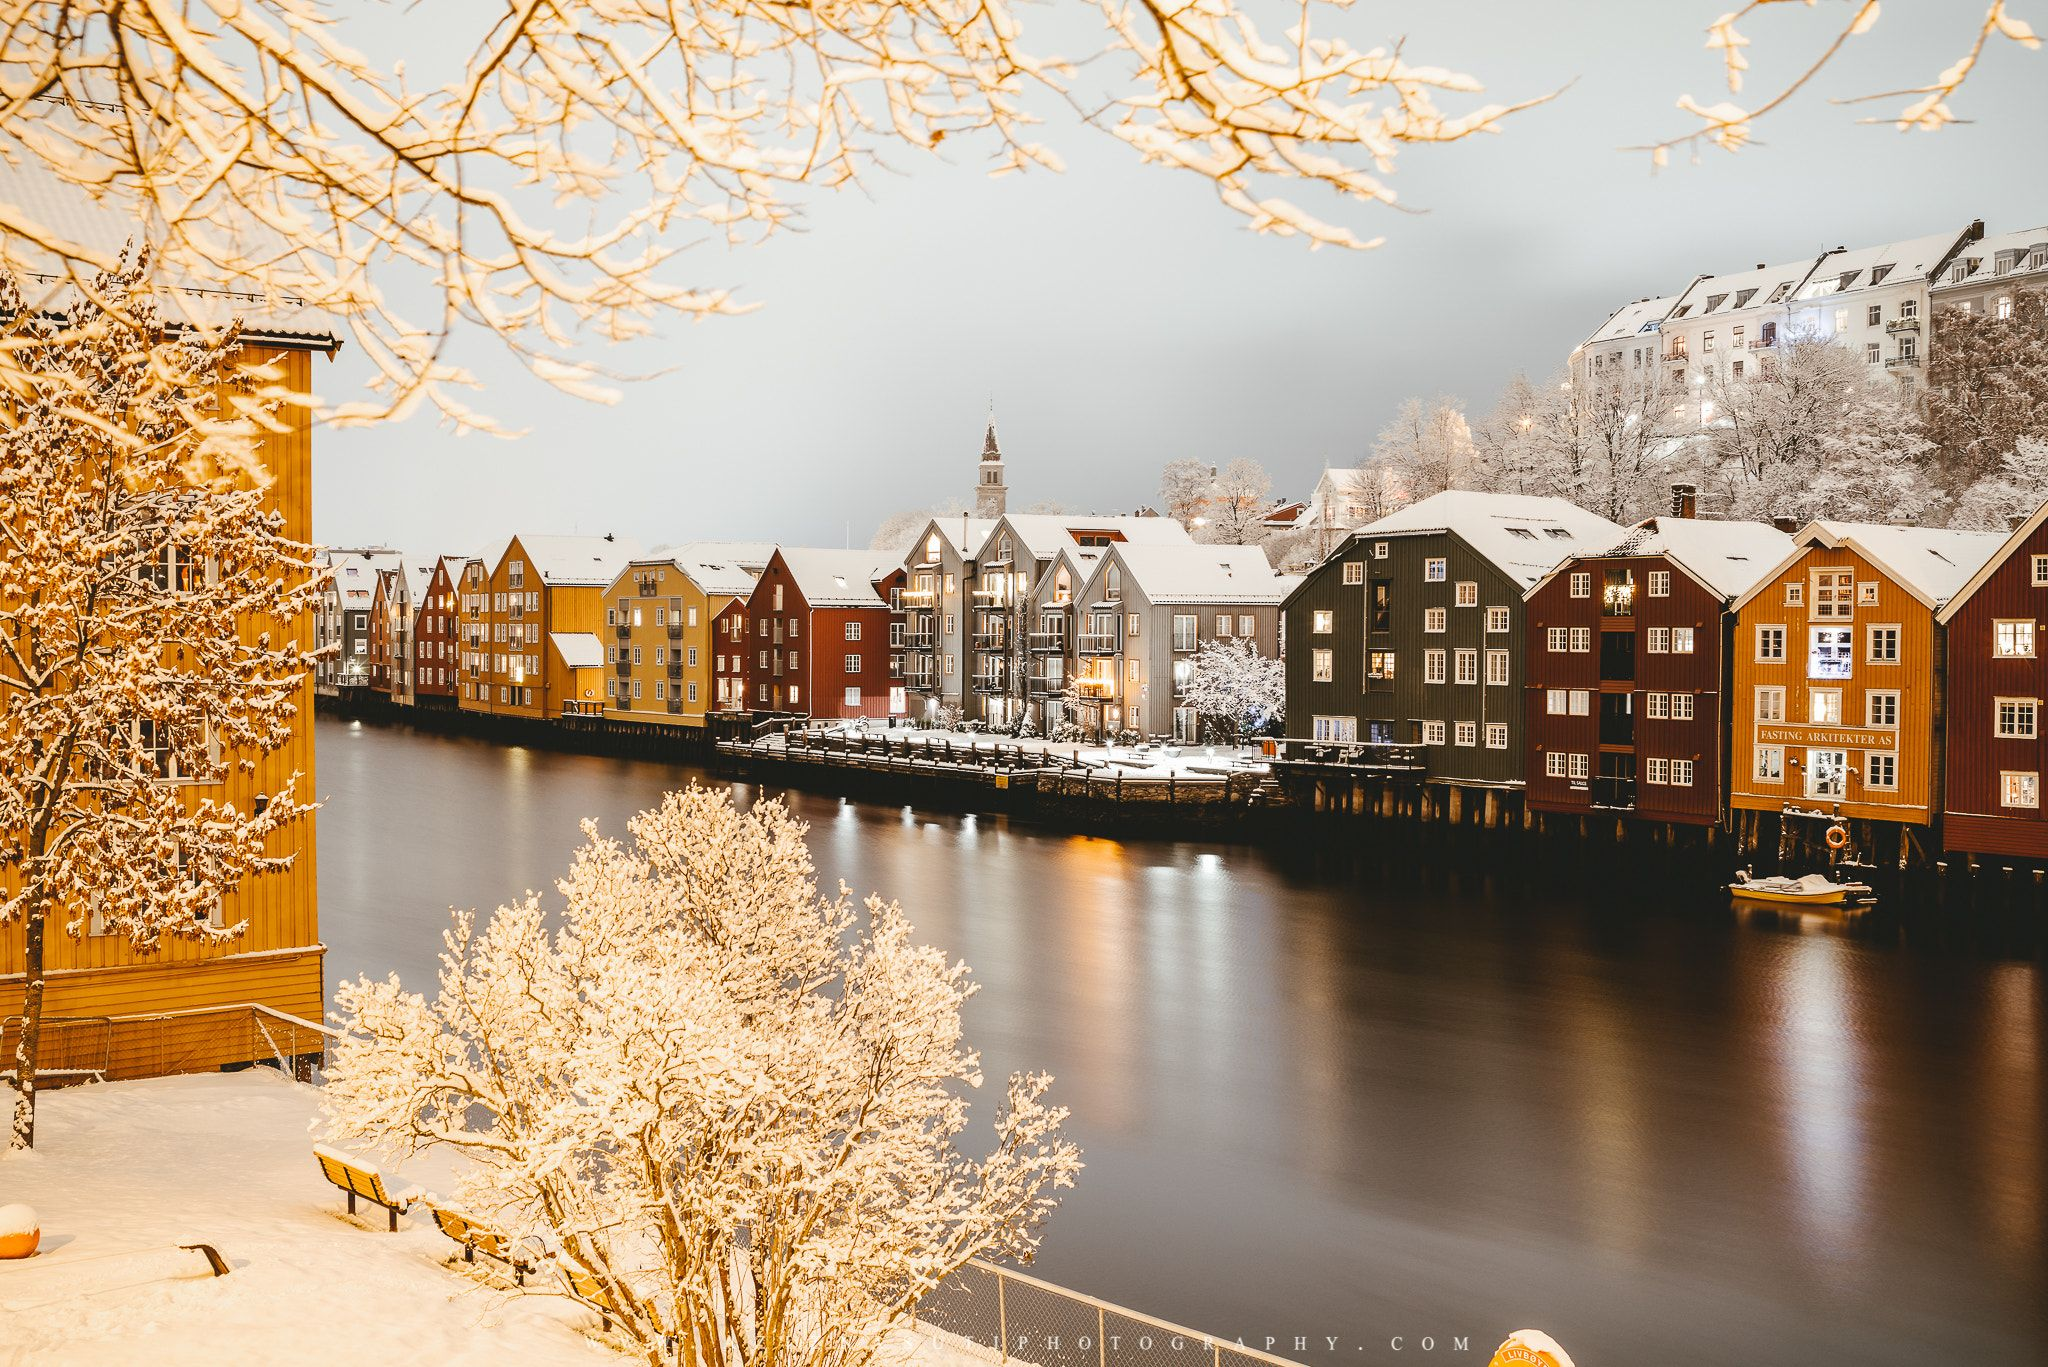 Beautiful Wintermood of Trondheim - www.aziznasutiphotography.com